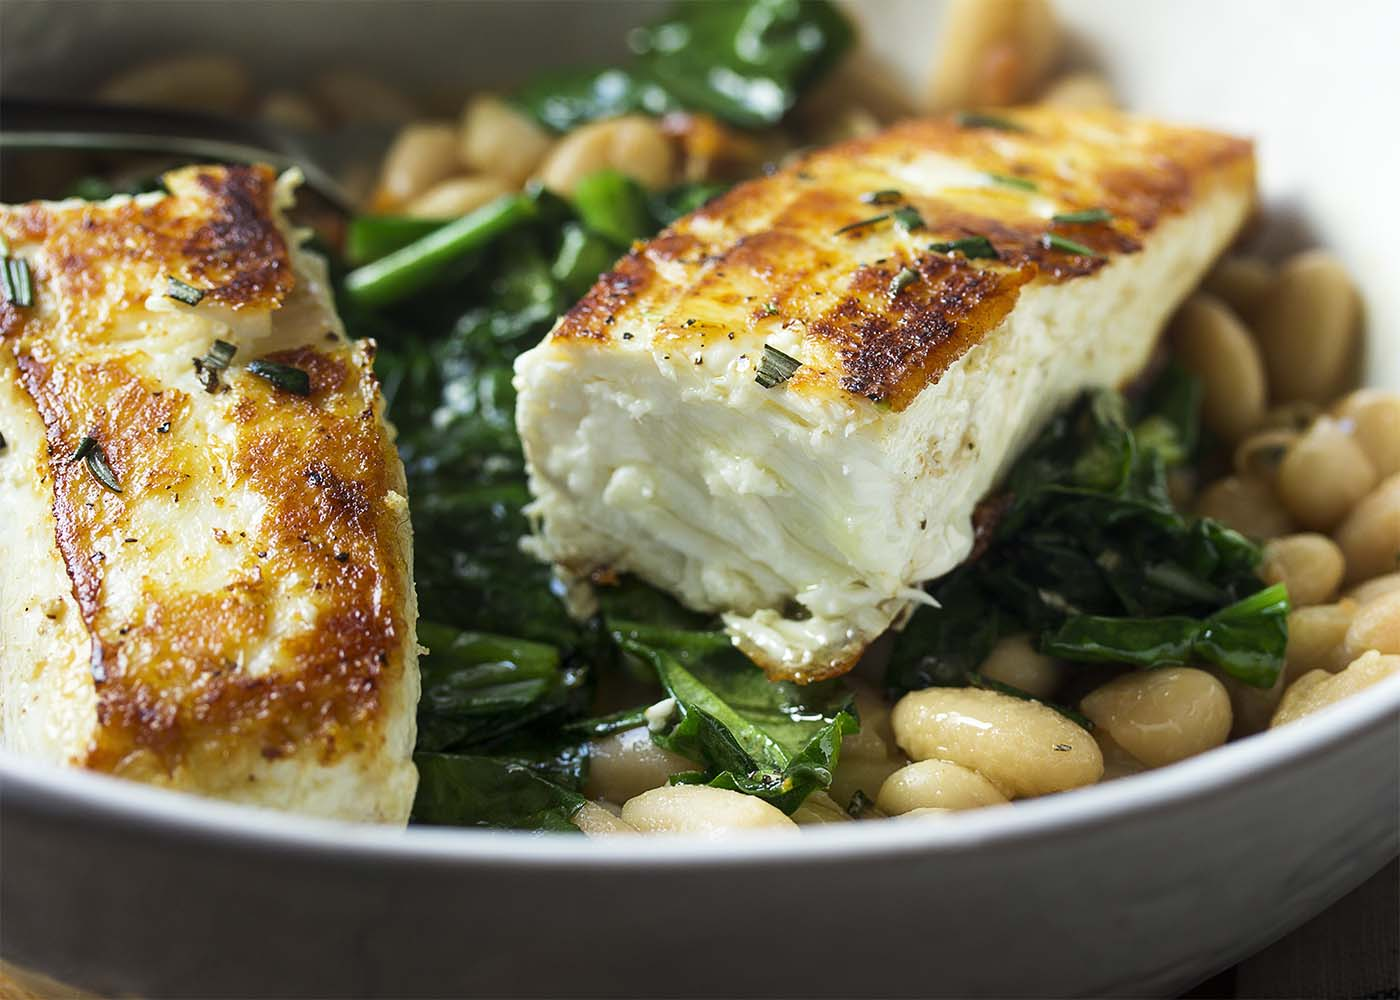 Close up of a piece of halibut showing the seared outside and juicy inside.